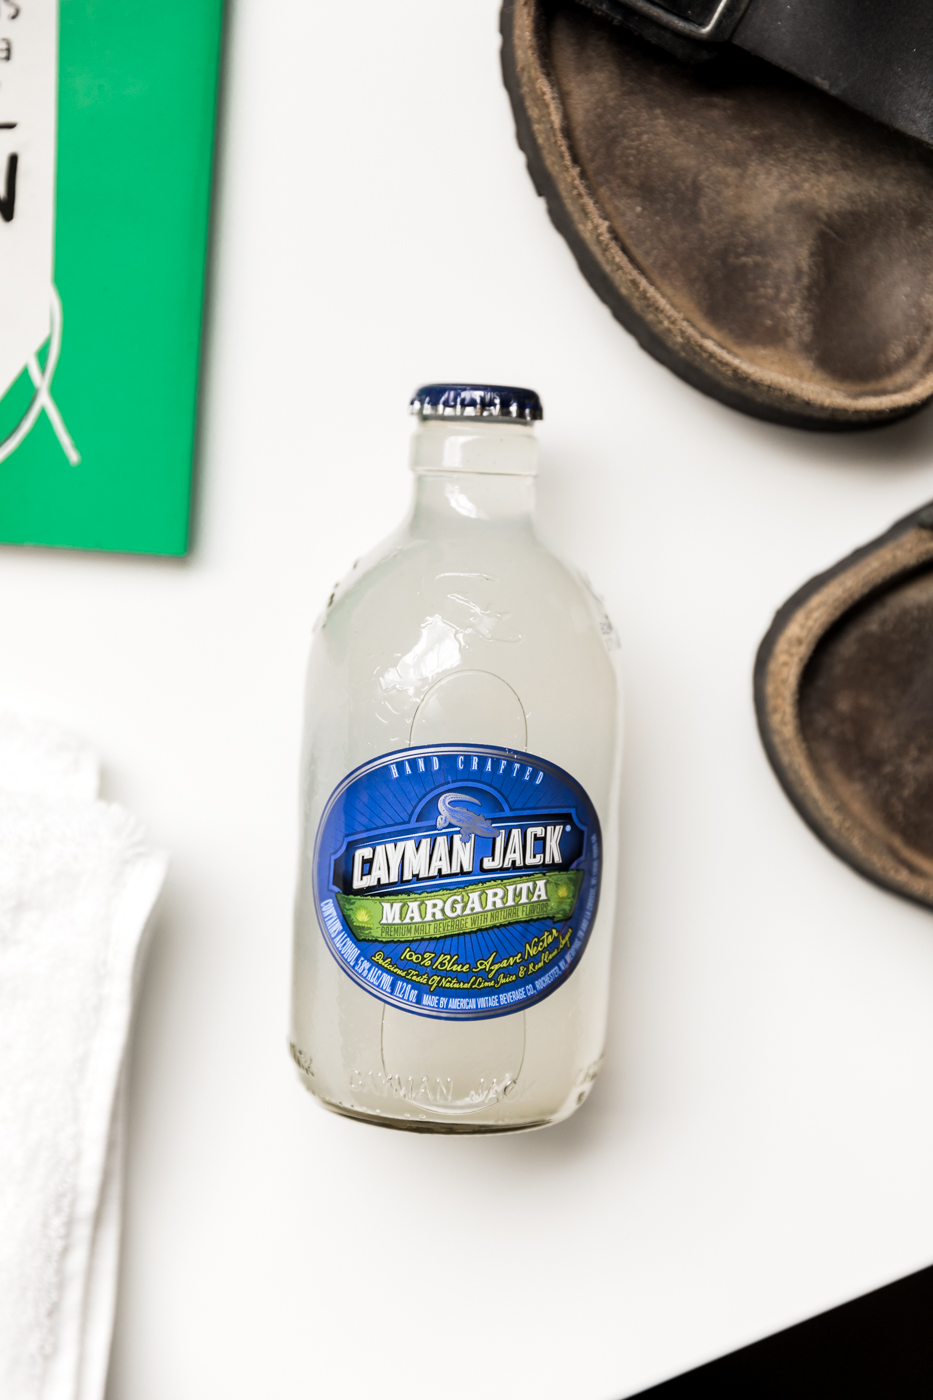 cayman jack margarita, pool day companions, what to drink by the pool, cayman jack, the kentucky gent